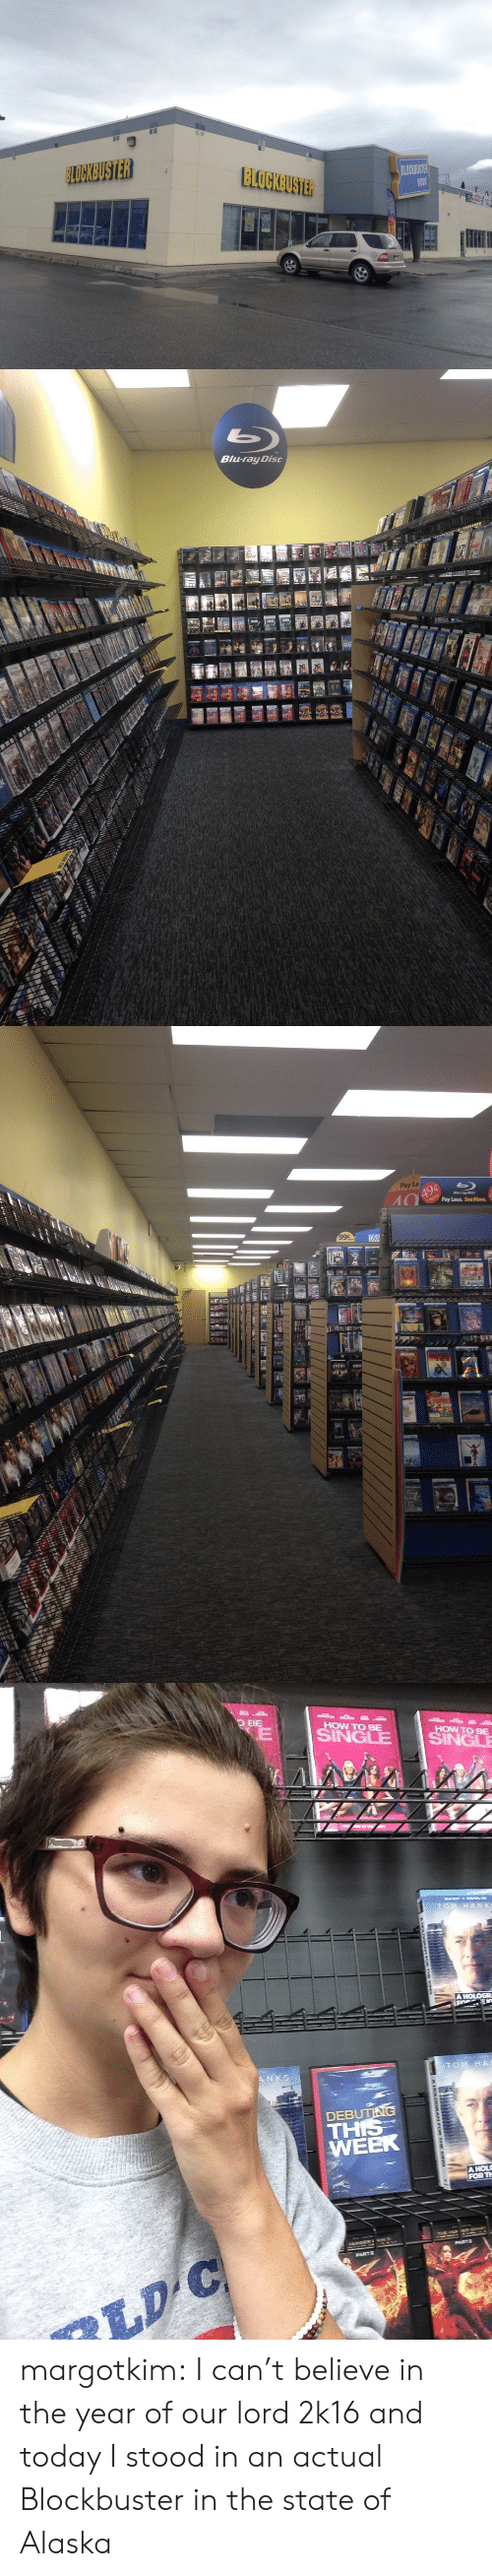 2k16: BLOCKBUSTER   Blu-ray Disc   Pay Le  Pay Less. SeeMore.   HOW TO BE  HOW TO BE  DEBU  TH  WEER  FORT margotkim:  I can't believe in the year of our lord 2k16 and today I stood in an actual Blockbuster in the state of Alaska